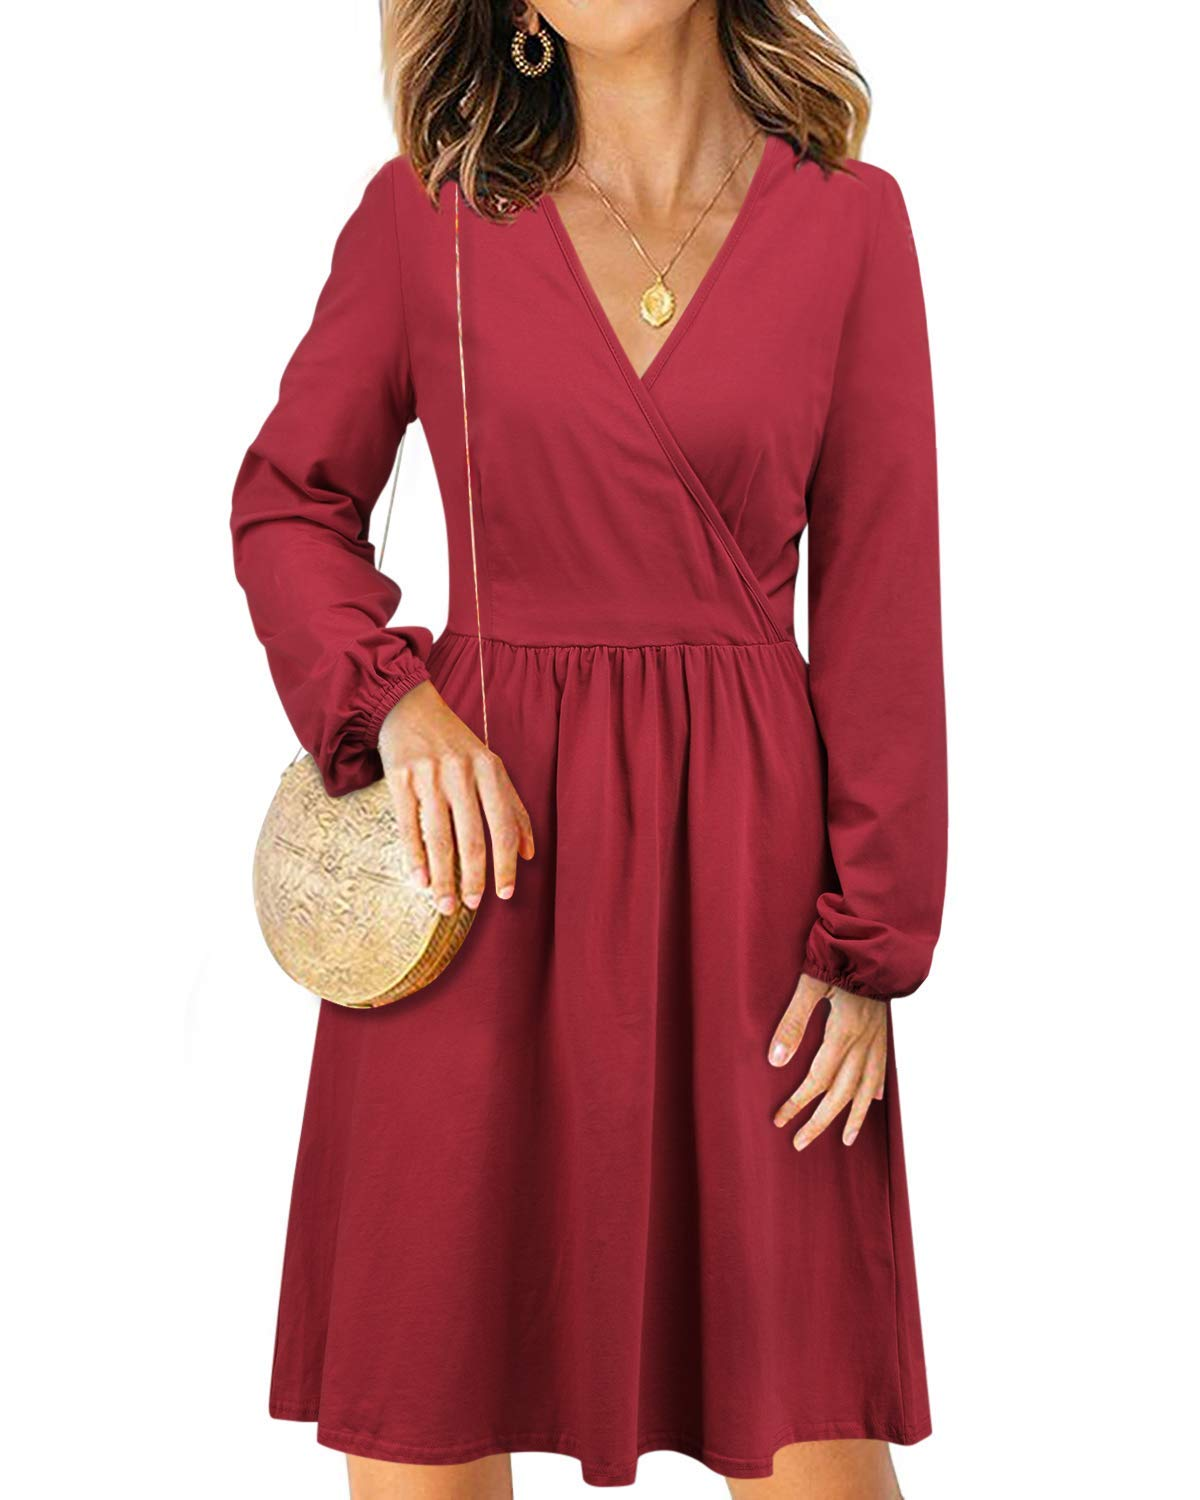 STYLEWORD Women's V Neck Long Puff Sleeve Casual Dress with Pocket(Wine-488,L) - wiihuu